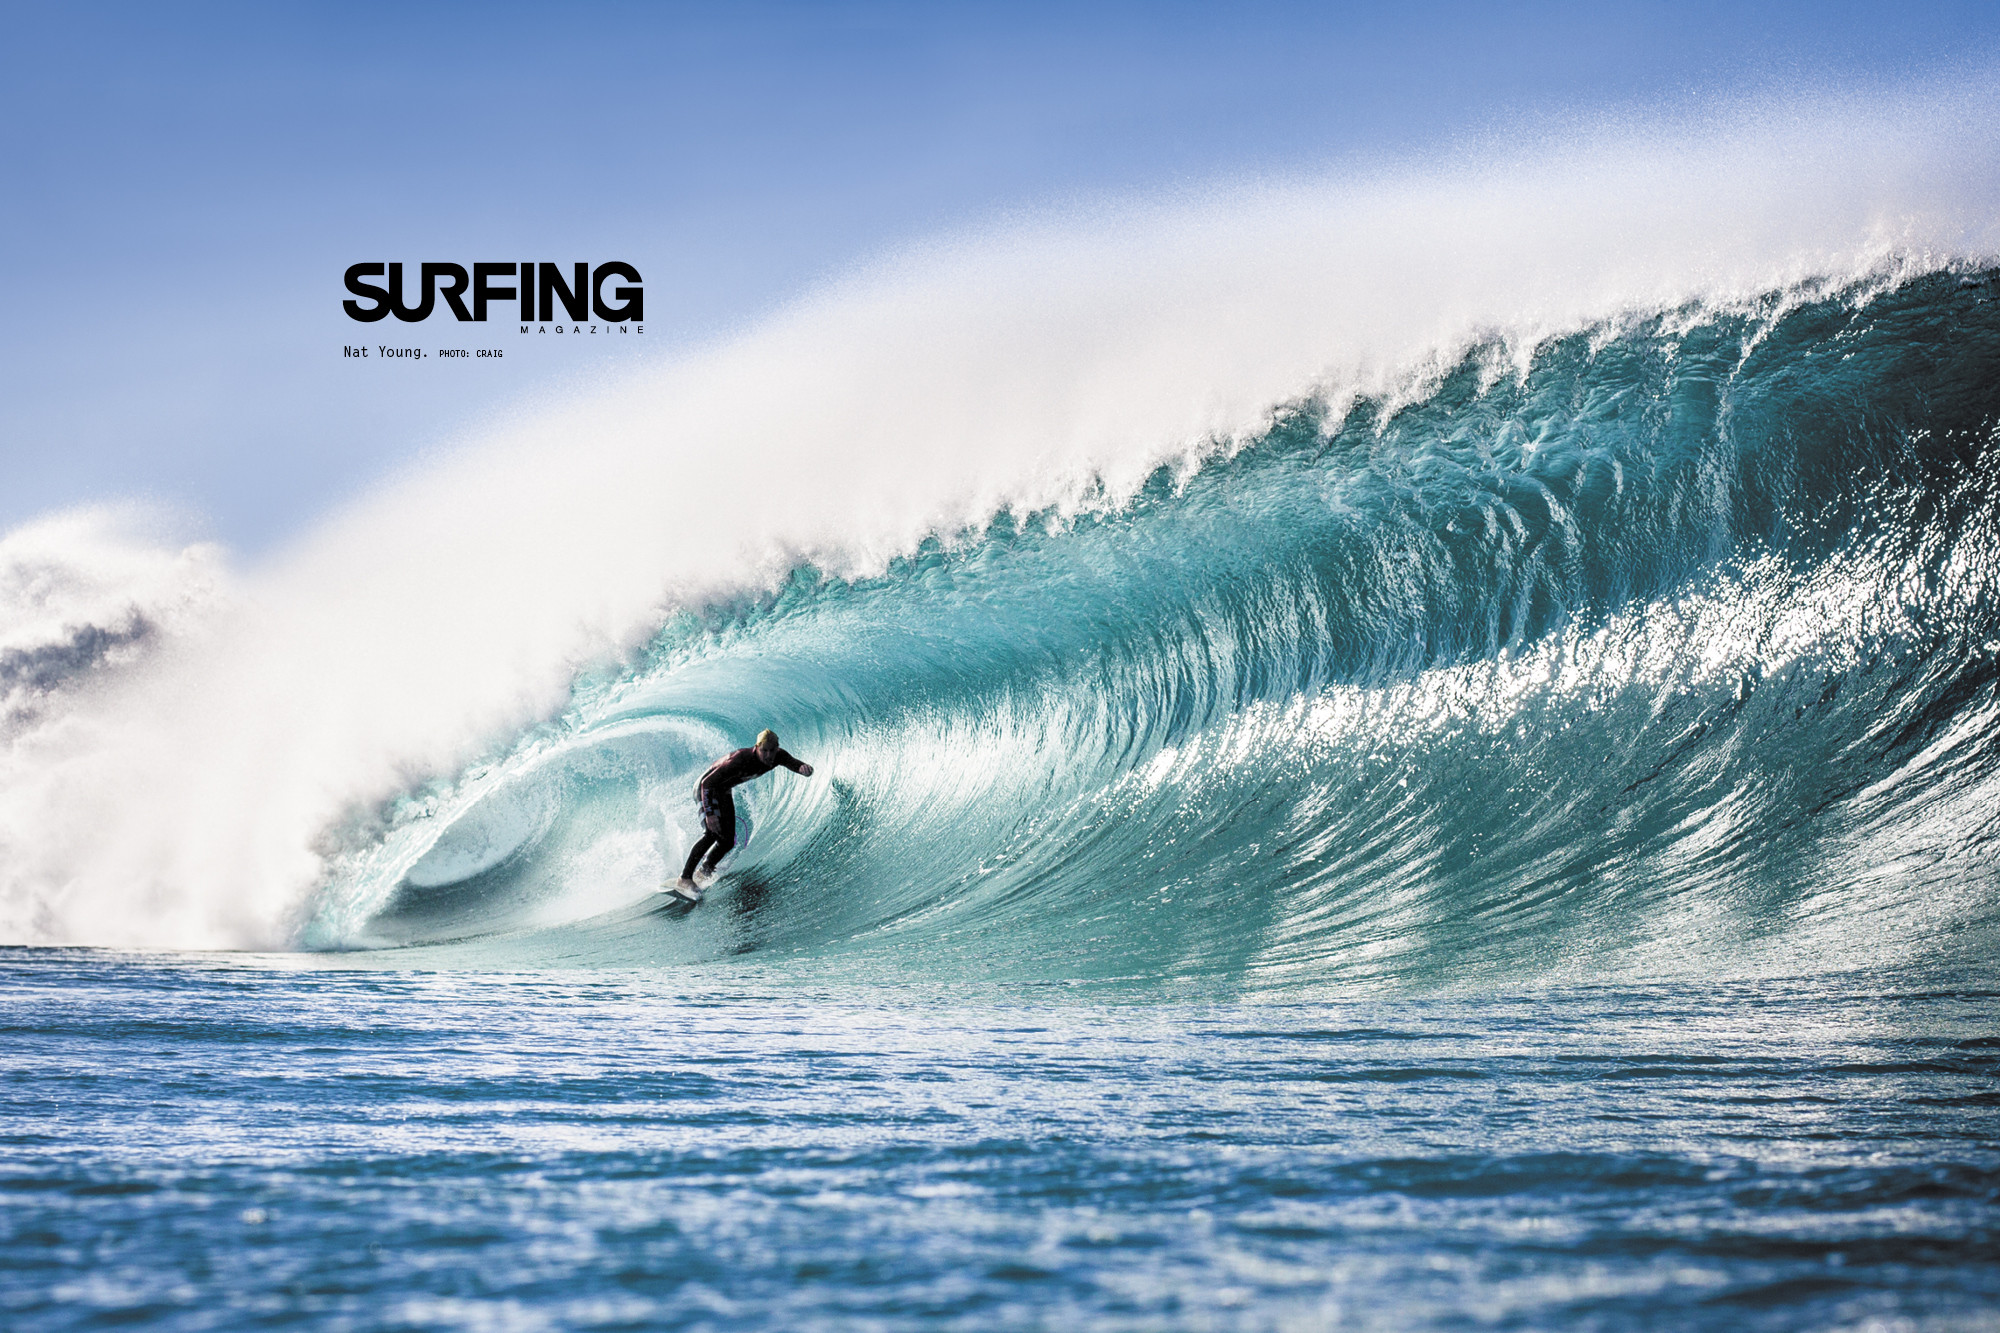 2000x1333 Cool Surfing Wallpaper. Â«